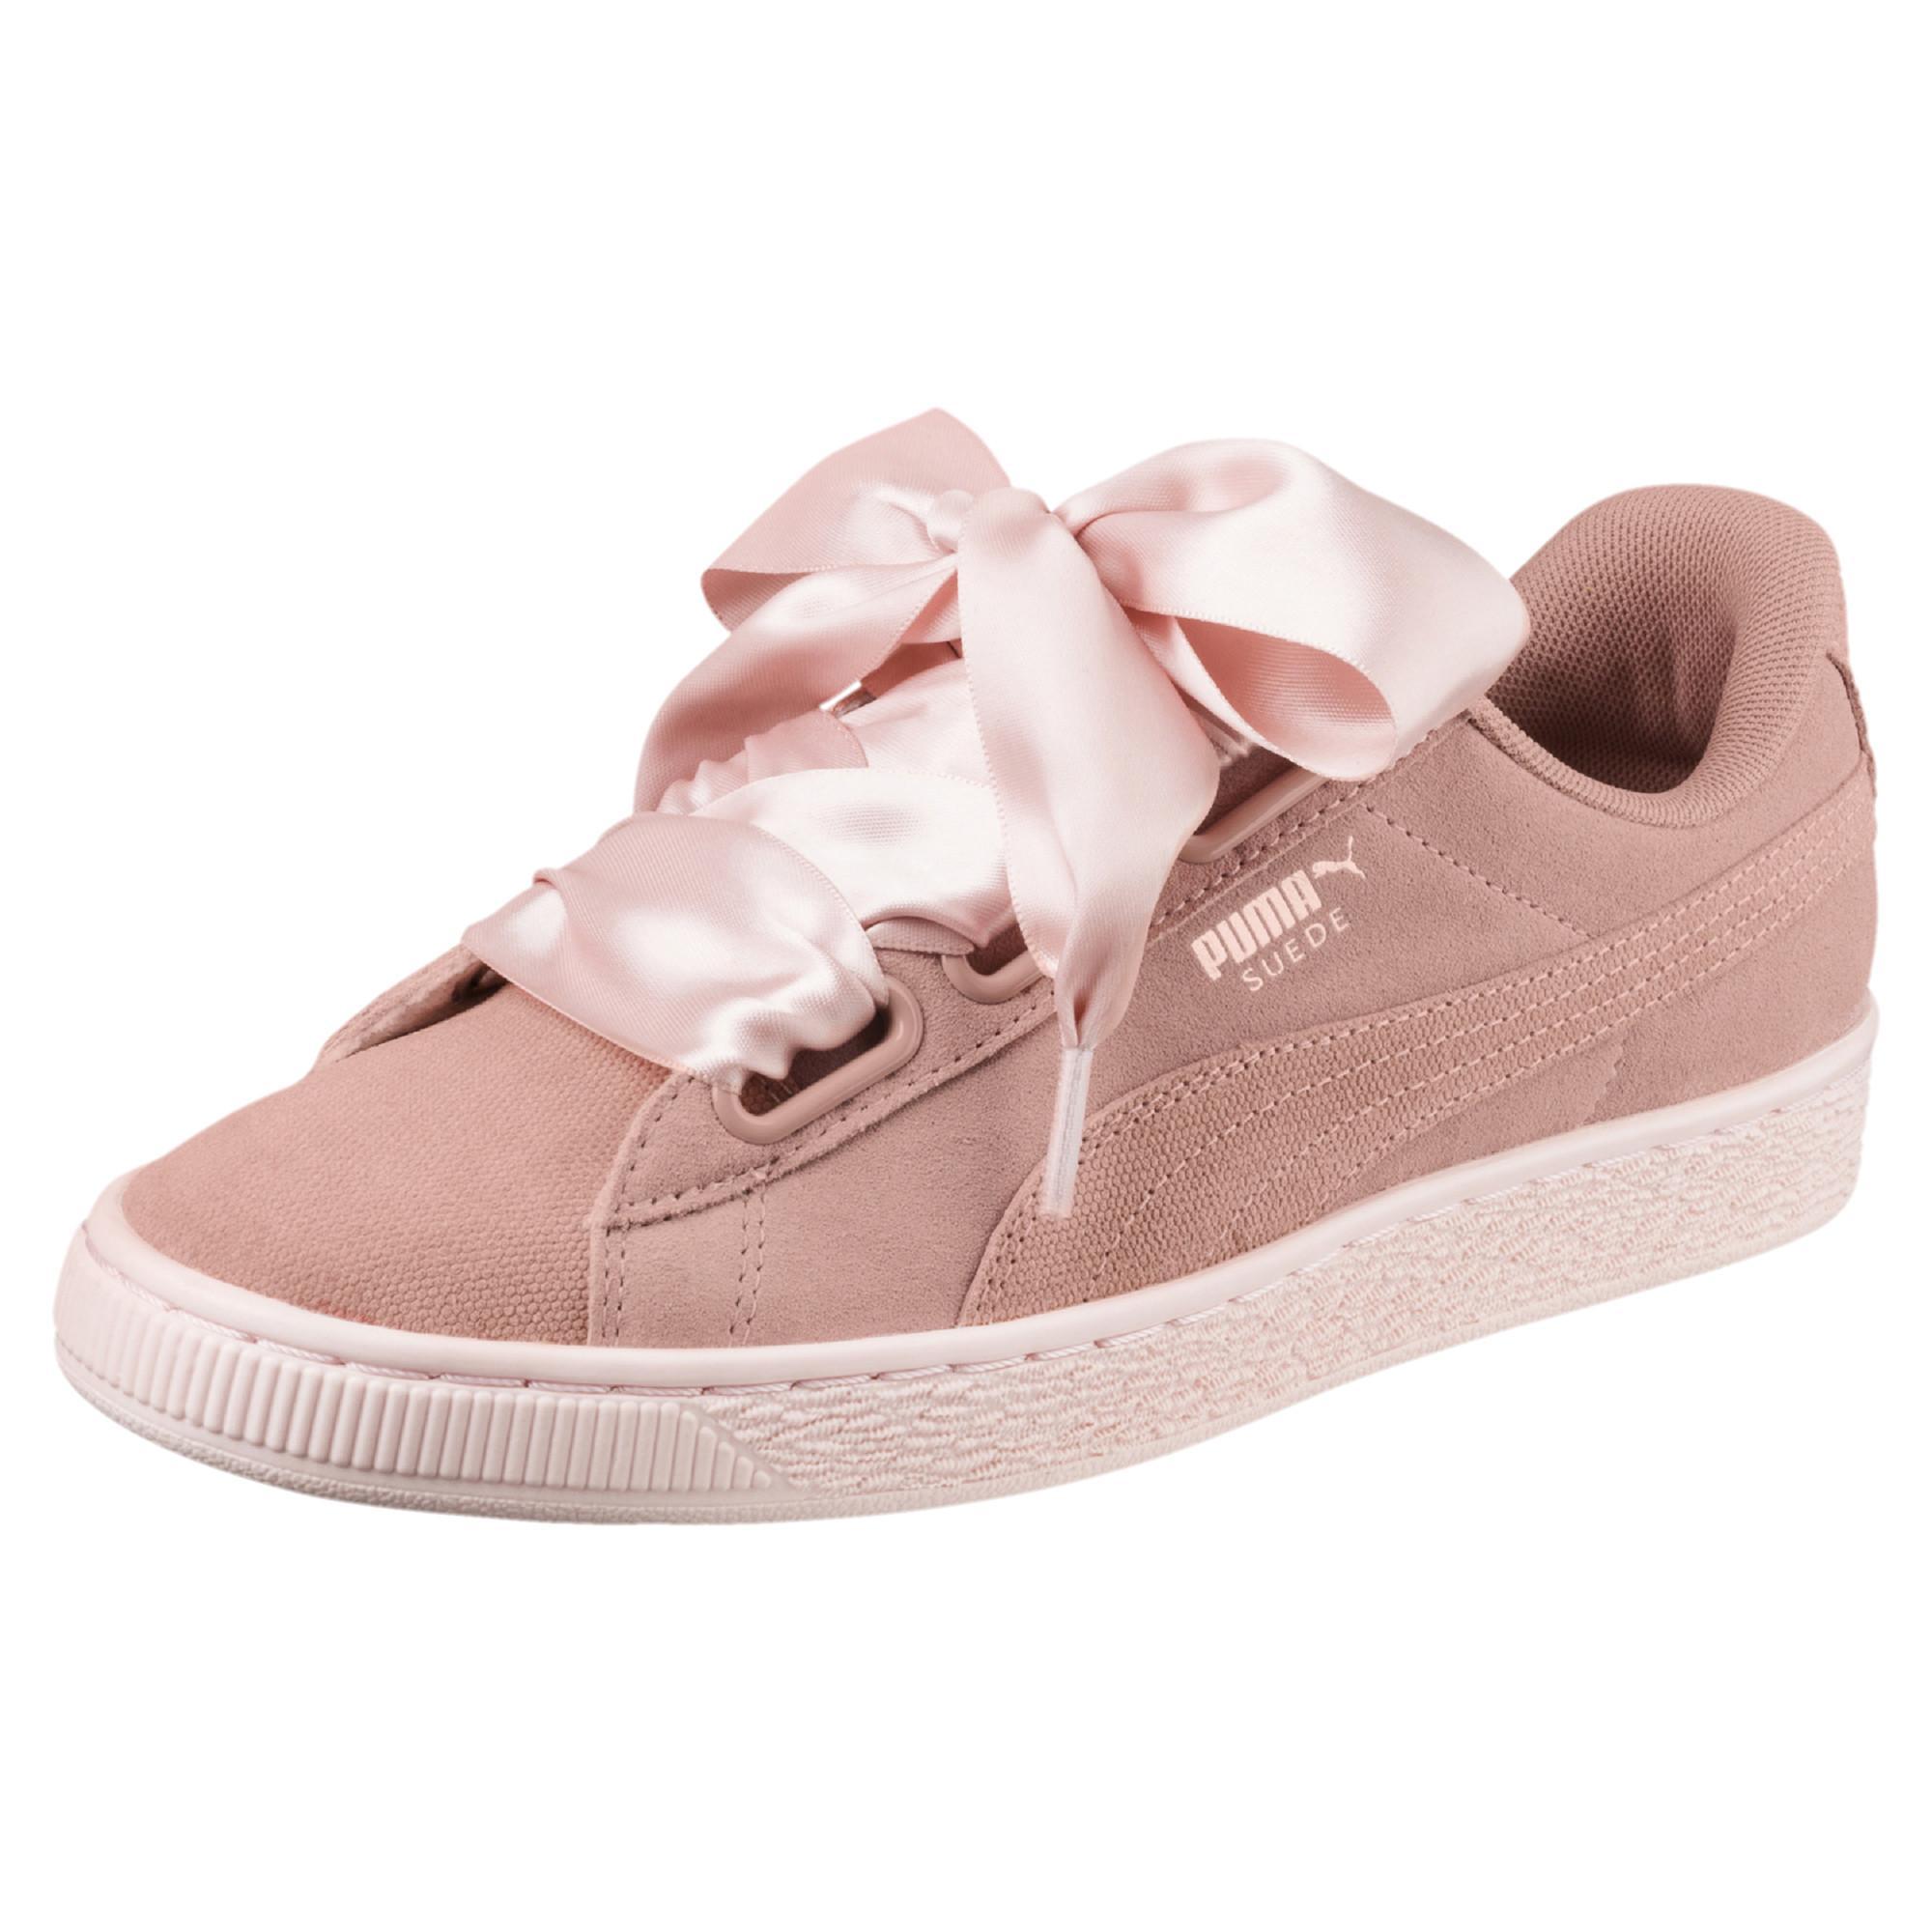 new products 1a5e3 fc383 PUMA Suede Heart Pebble Women's Training Shoes 365210